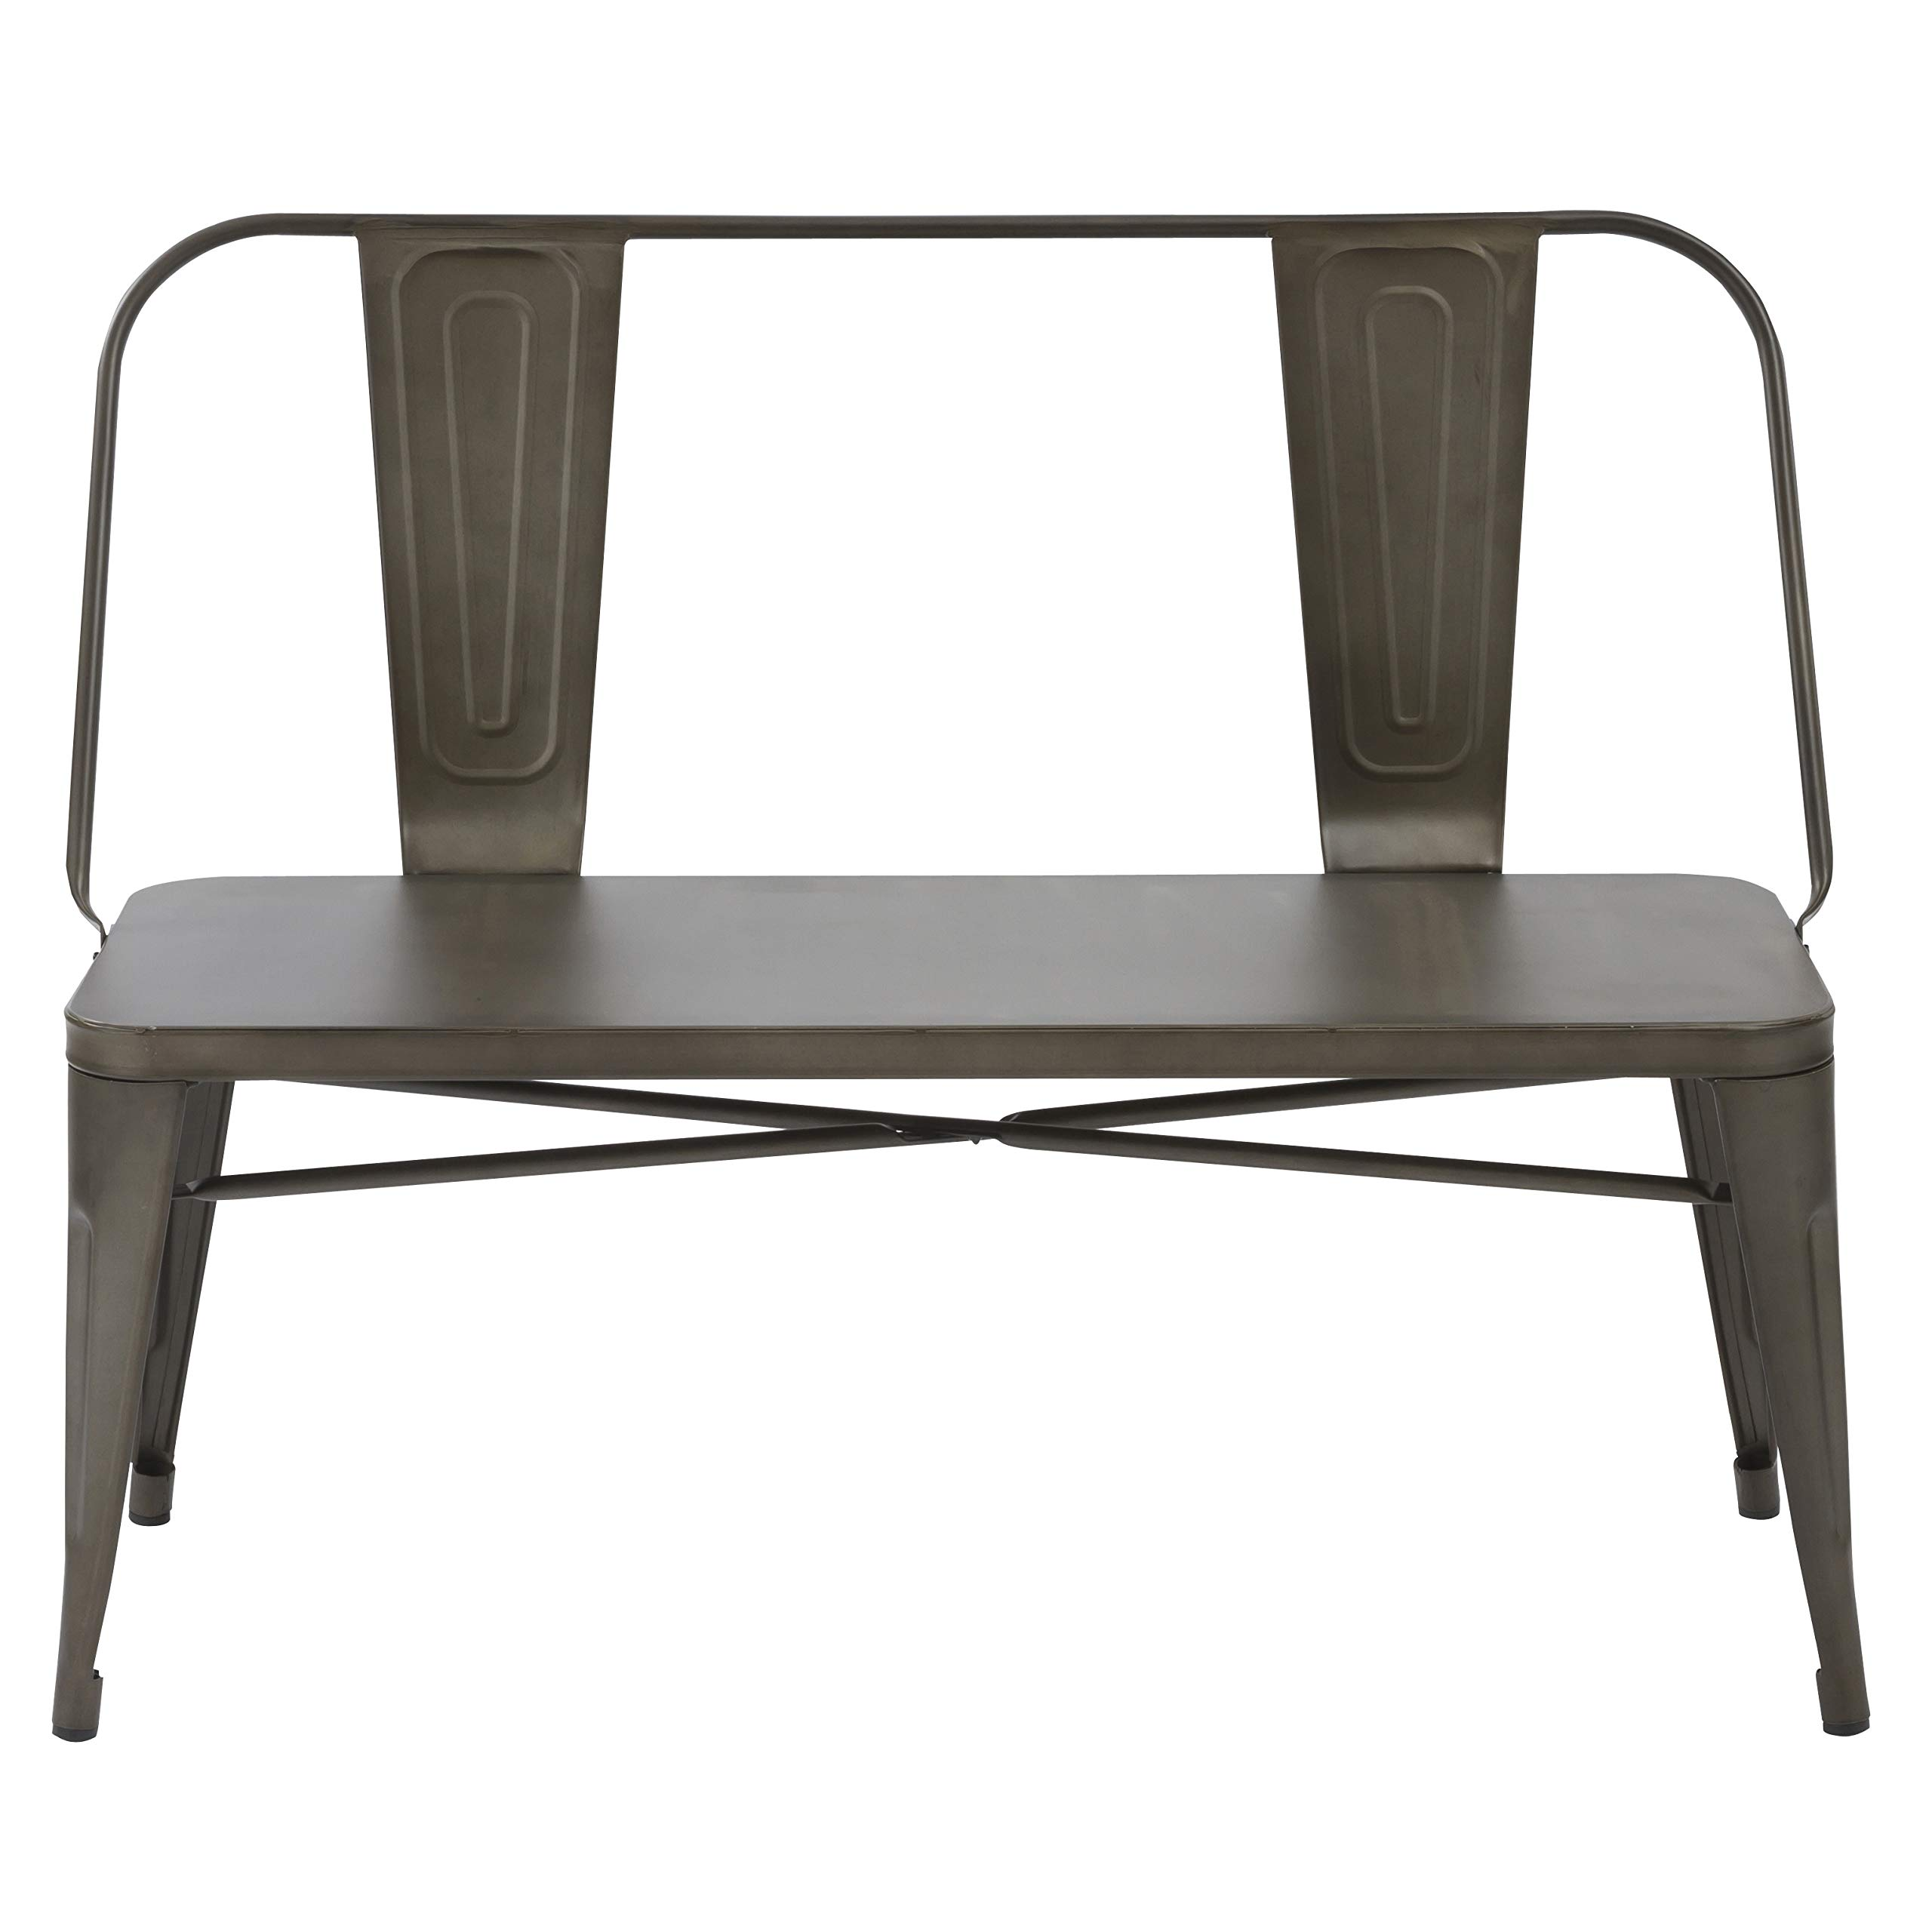 BTEXPERT Industrial Antique Steel Frame Distressed Metal Dining Bench with Full Back Seat, Bronze Patio Garden